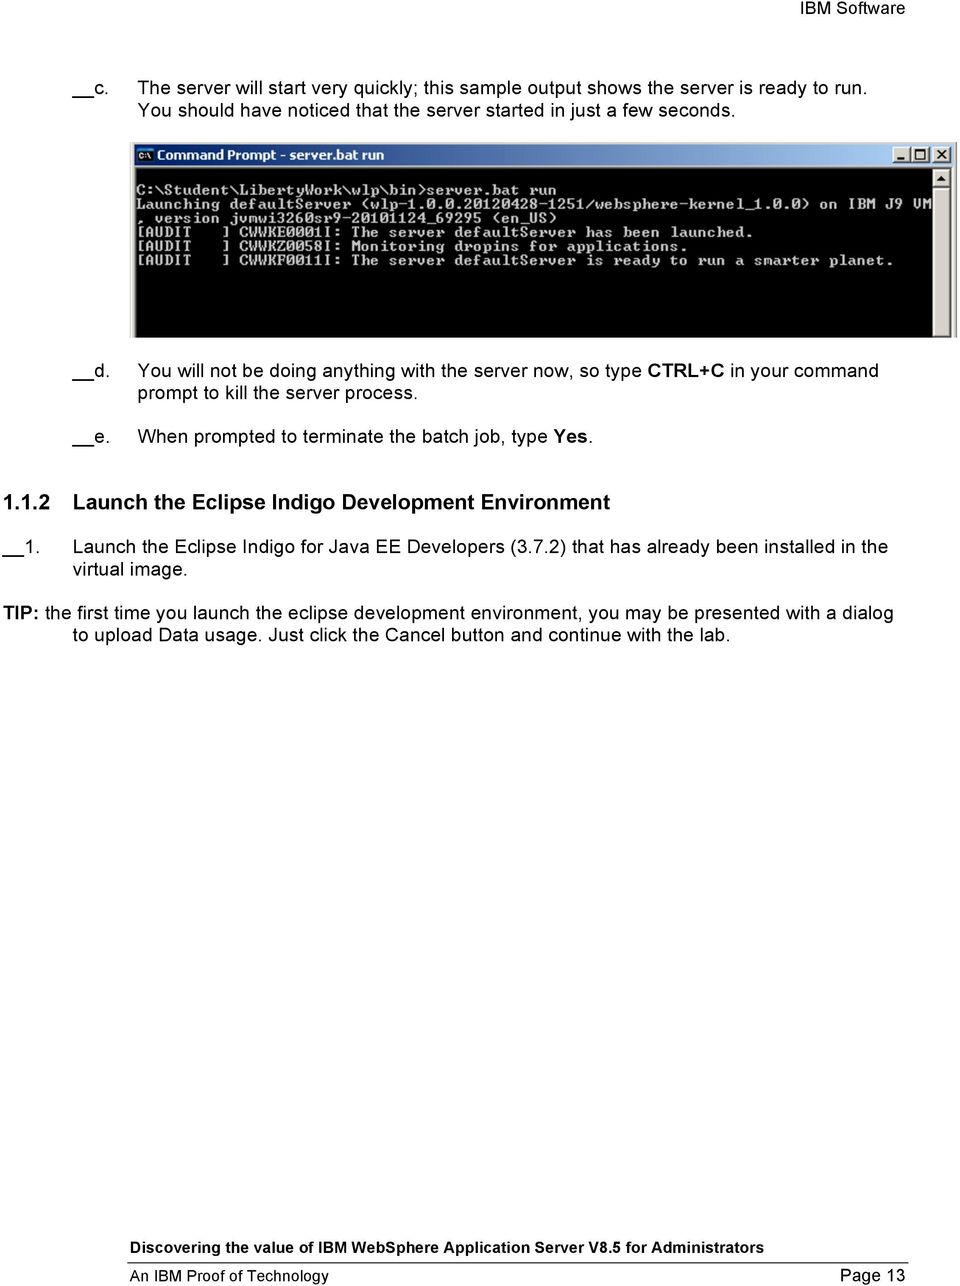 1.2 Launch the Eclipse Indigo Development Environment 1. Launch the Eclipse Indigo for Java EE Developers (3.7.2) that has already been installed in the virtual image.